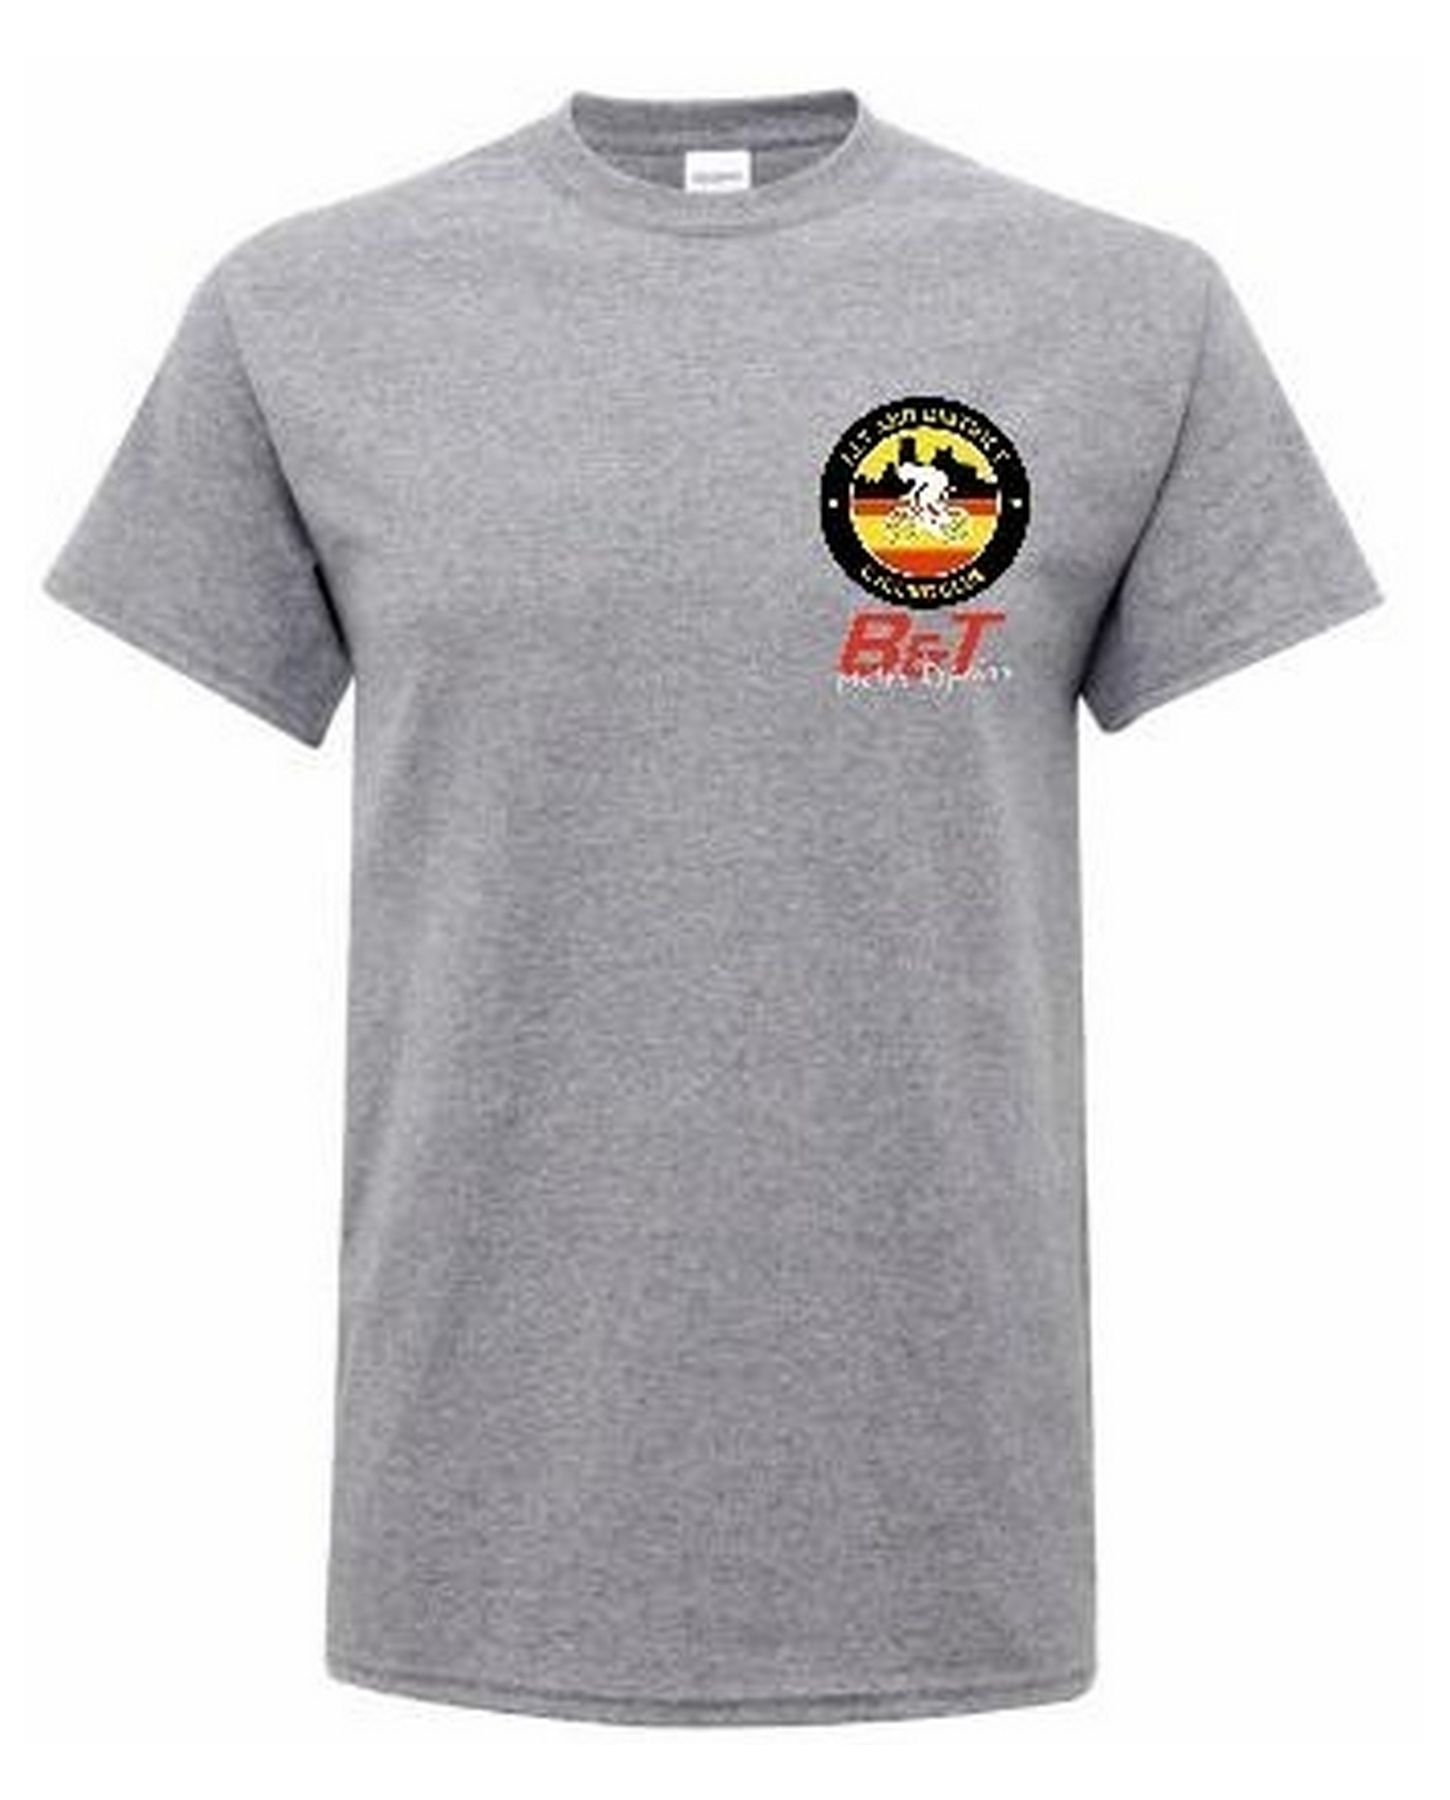 EDCC – Heavy Cotton Kids T-Shirt in Grey